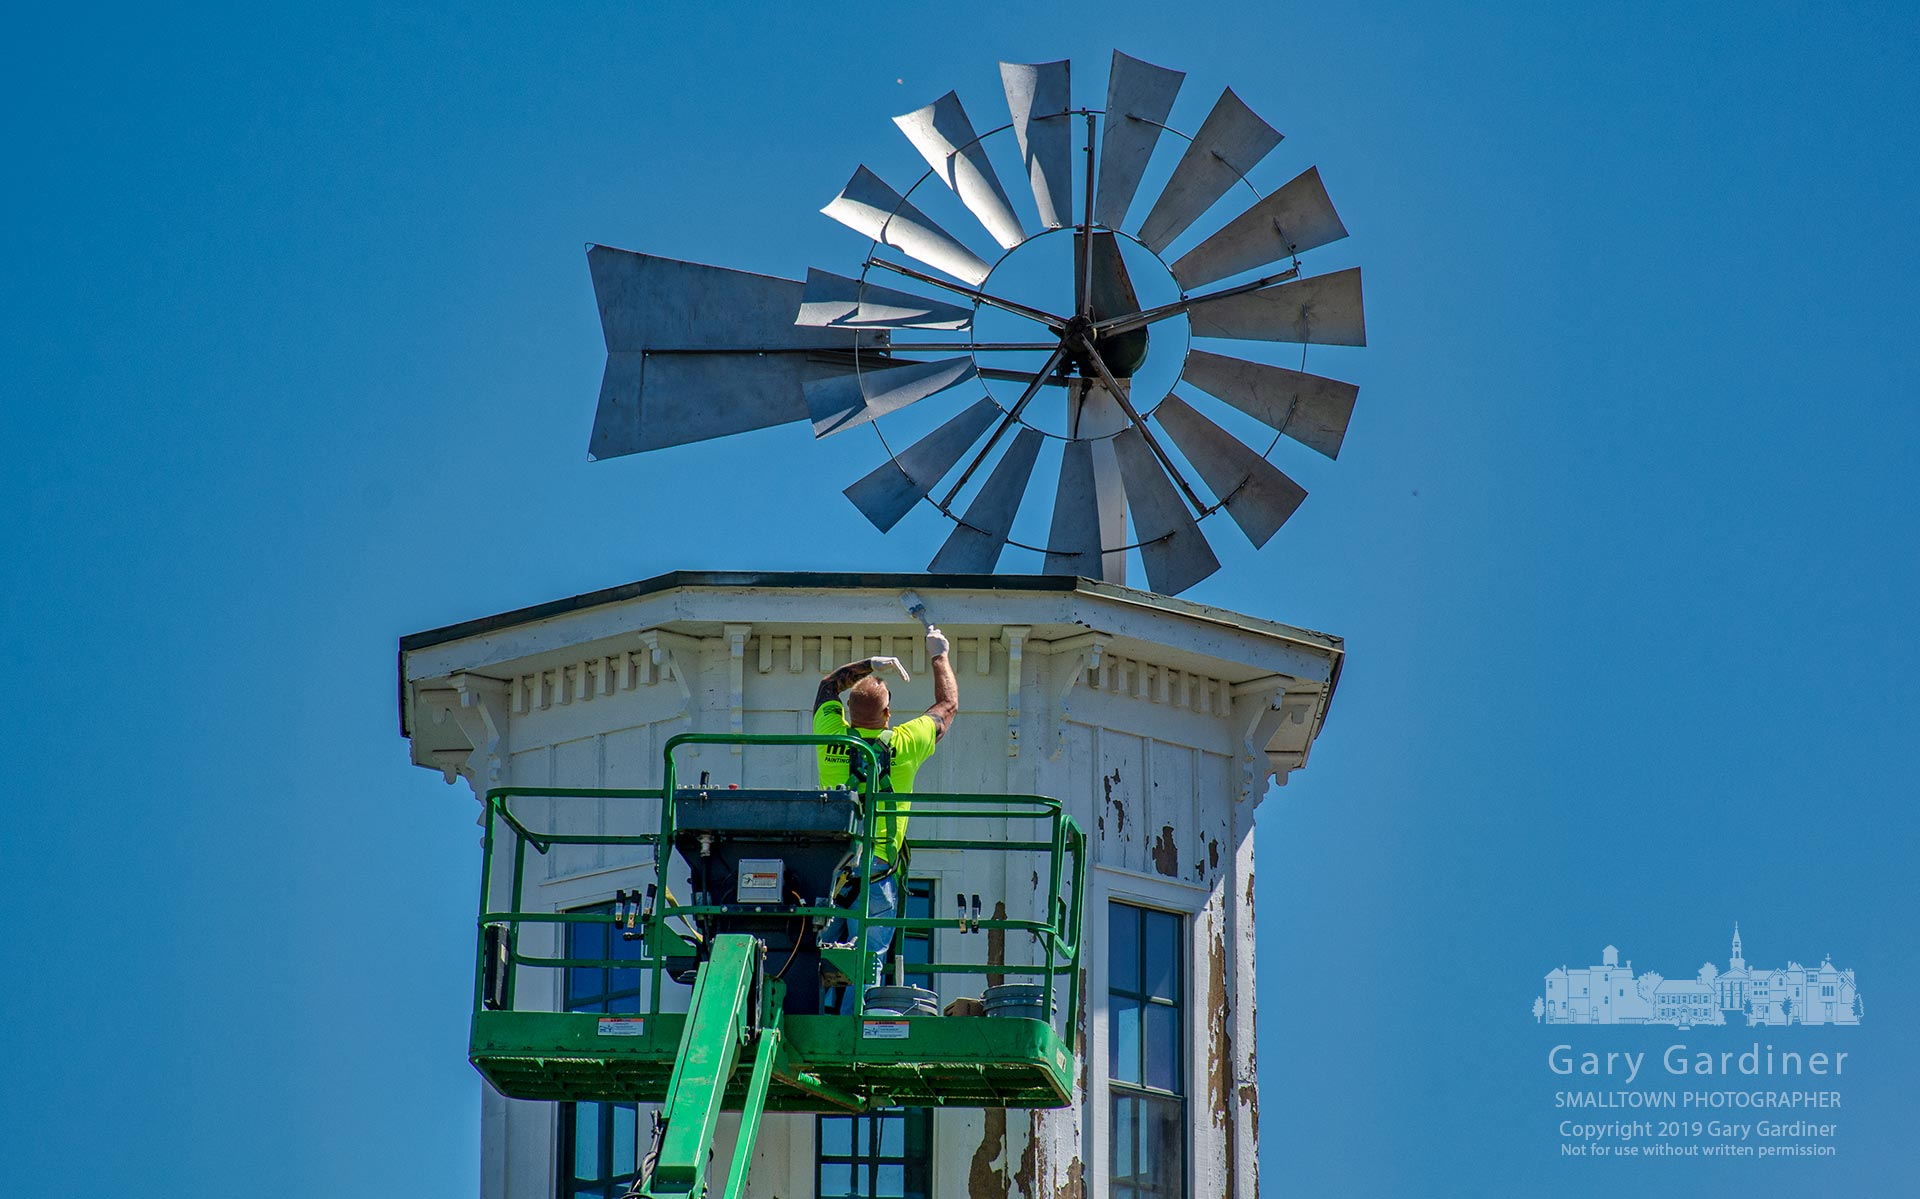 A painter applies a coat of primer to the top of the tower on the Everal Barn at Heritage Park in Westerville as the park undergoes minor upgrades and repairs. My Final Photo for April 22, 2019.